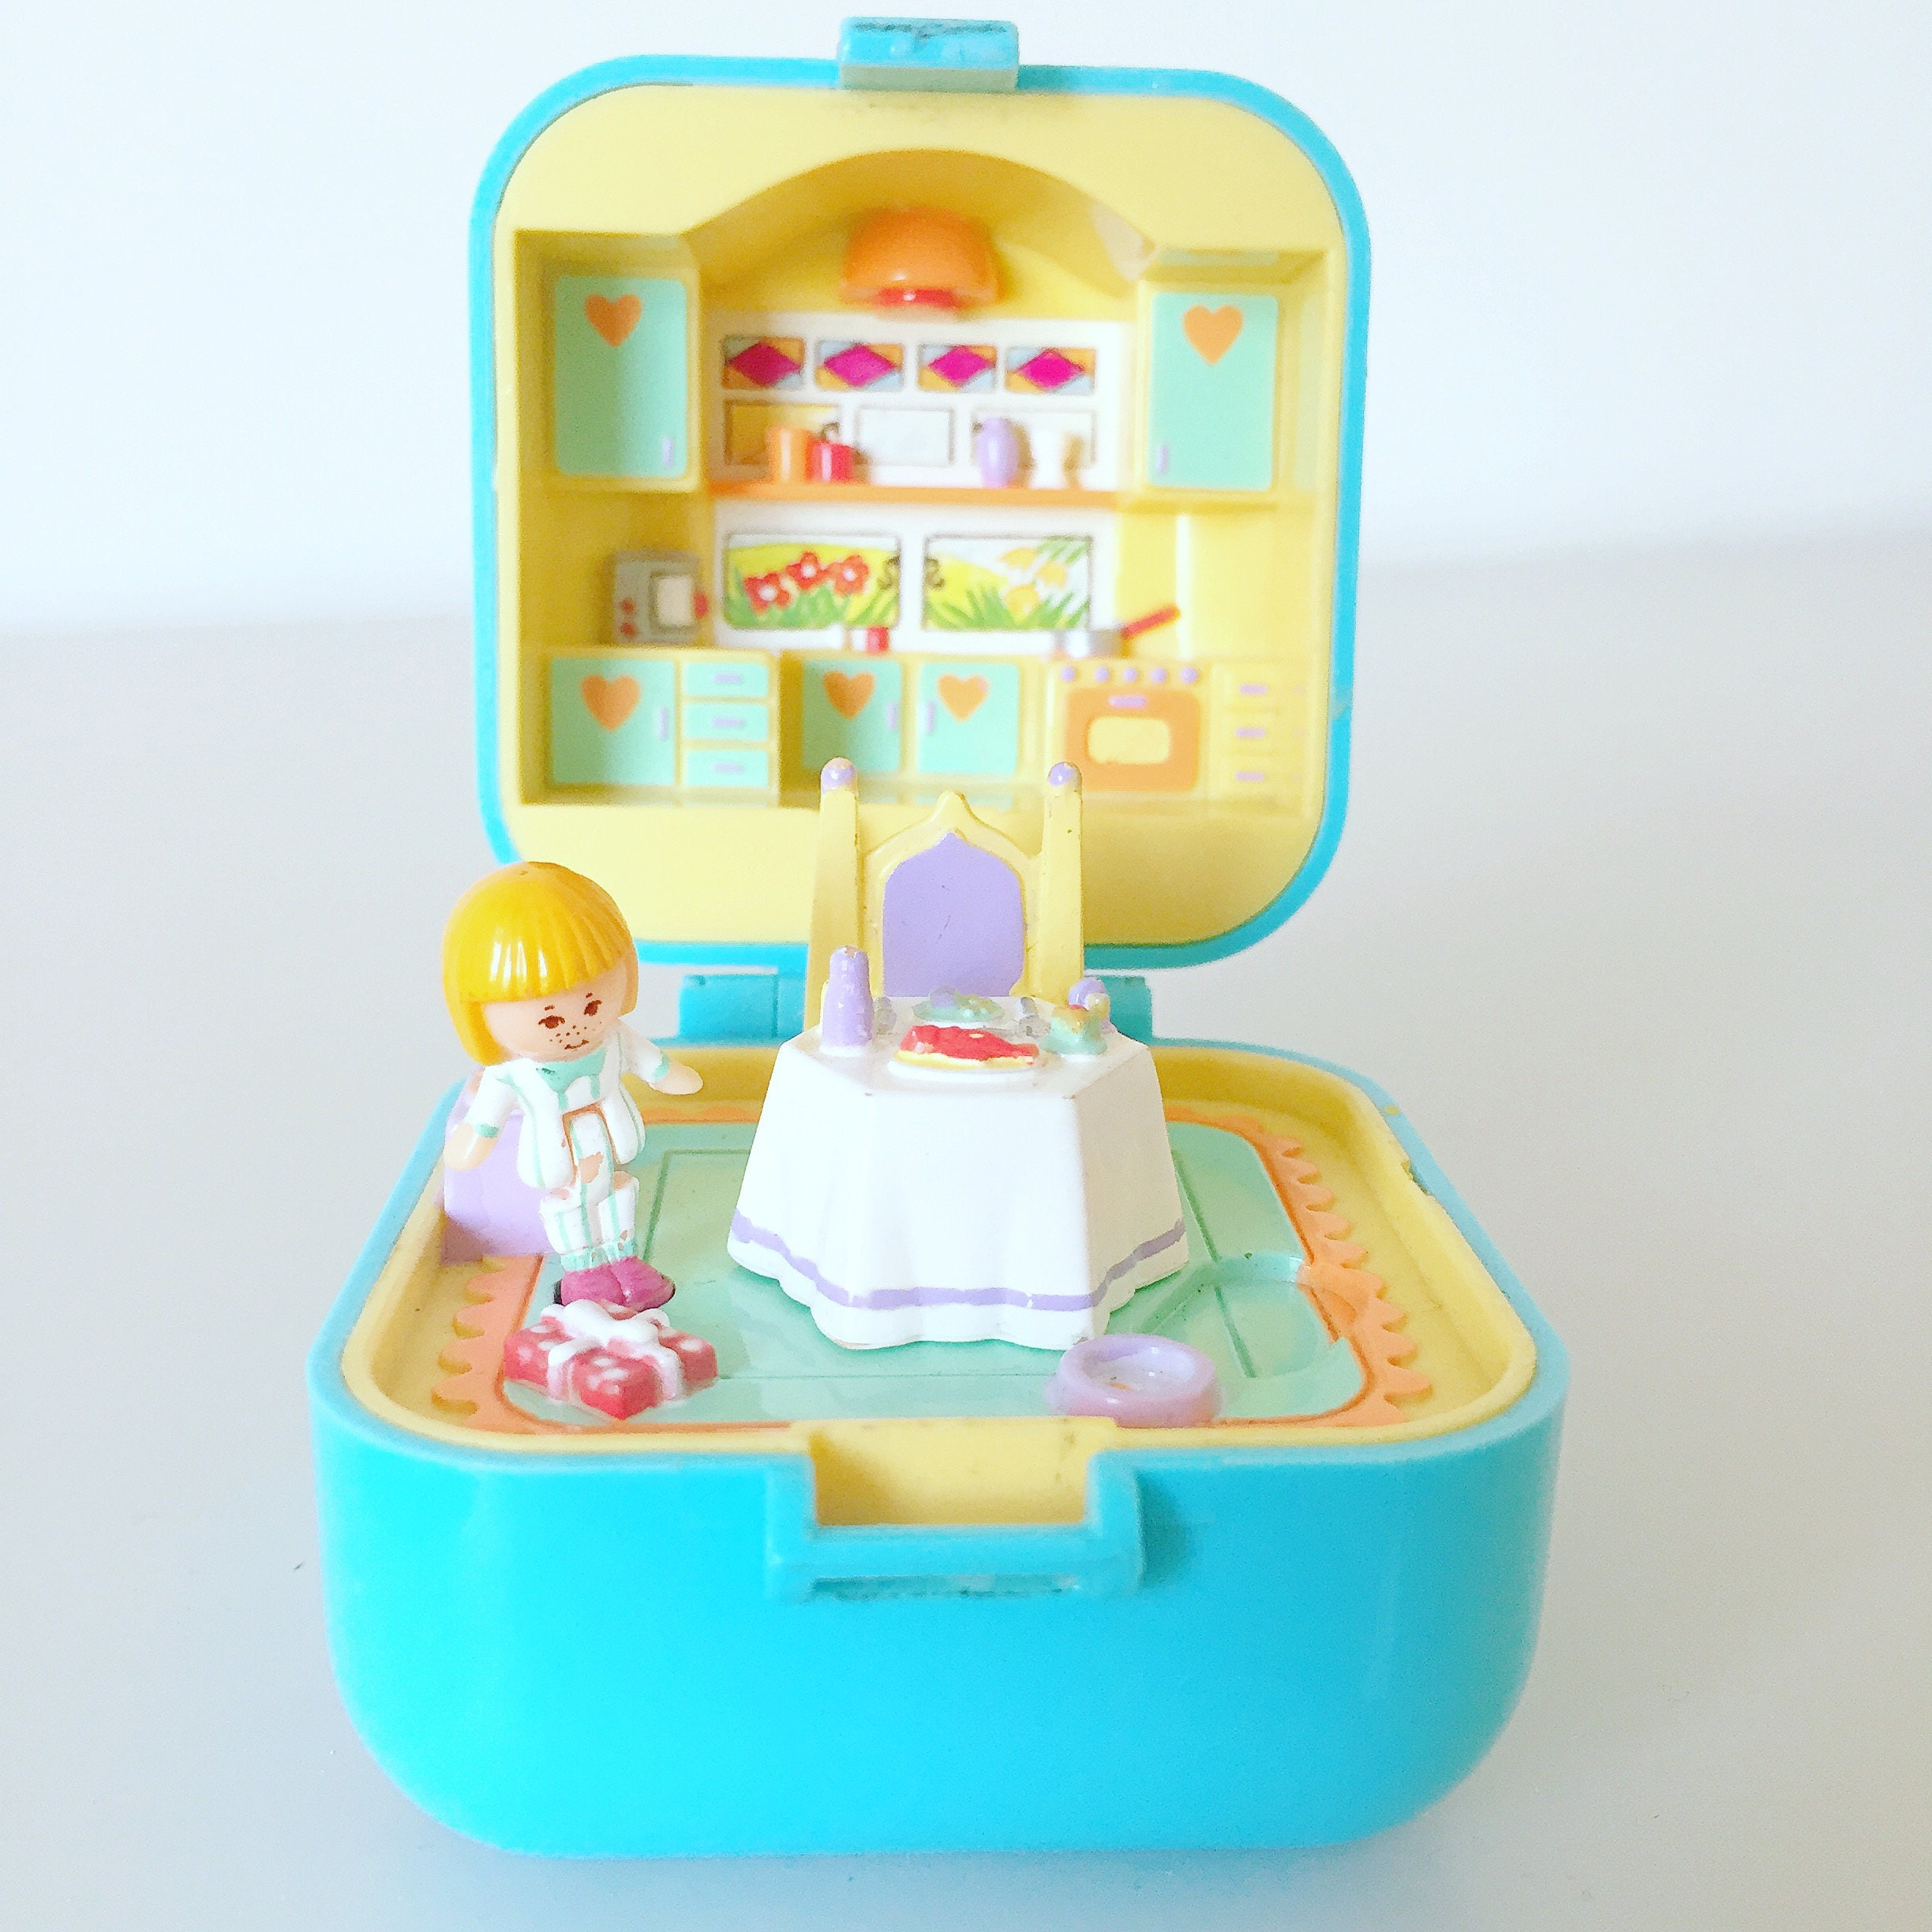 Rare 1991 Polly Pocket  Dinnertime Ring and Ring Case  Turquoise  Blue Square  Vintage  Kitchen